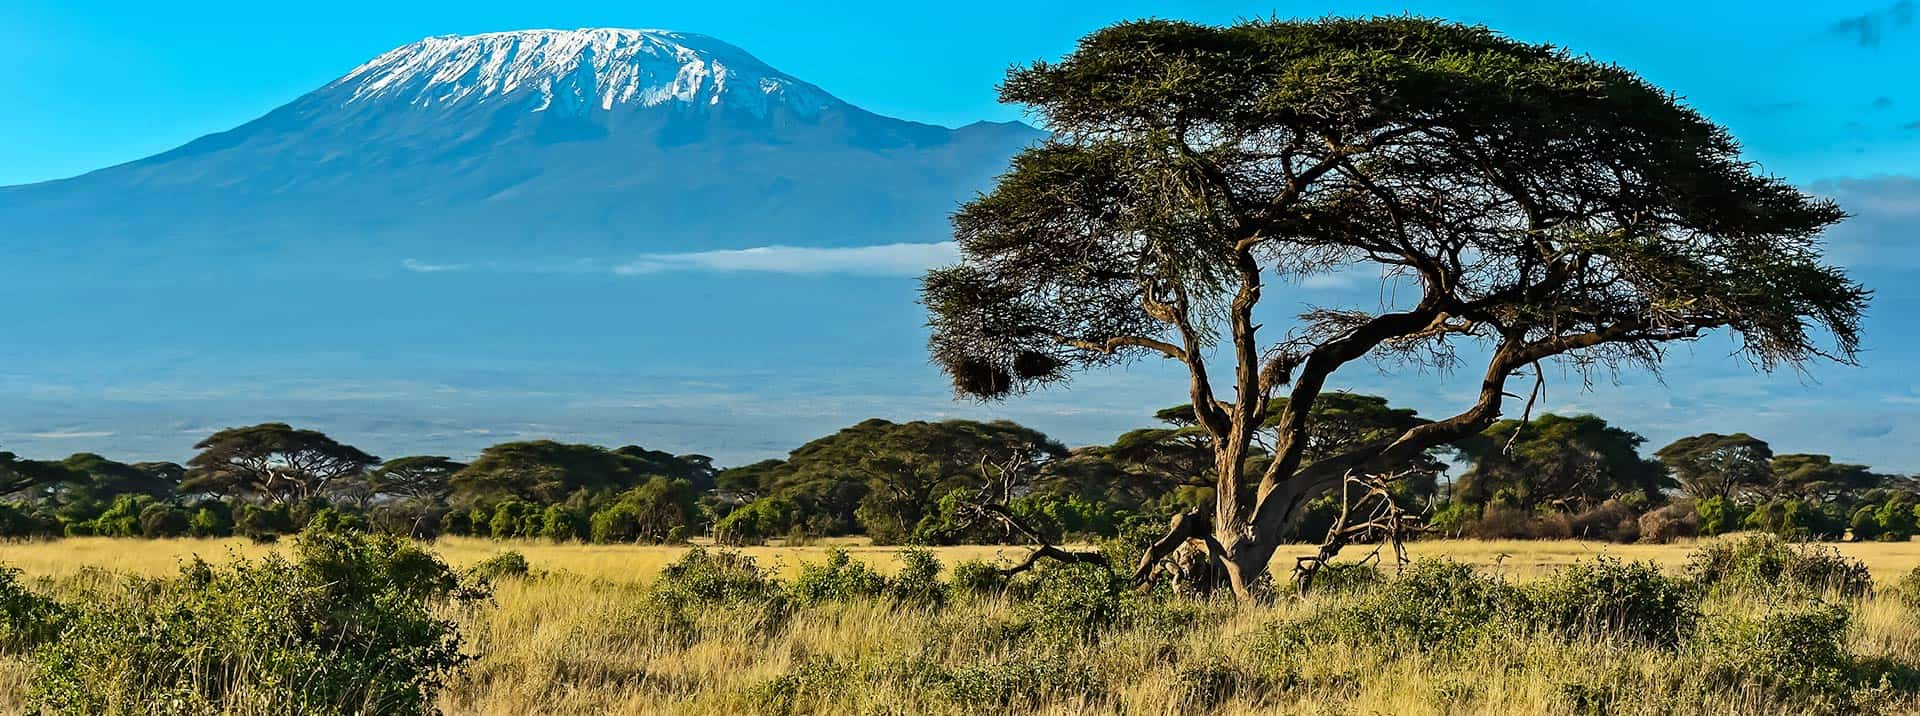 Featured-Image_Africa_1920x716